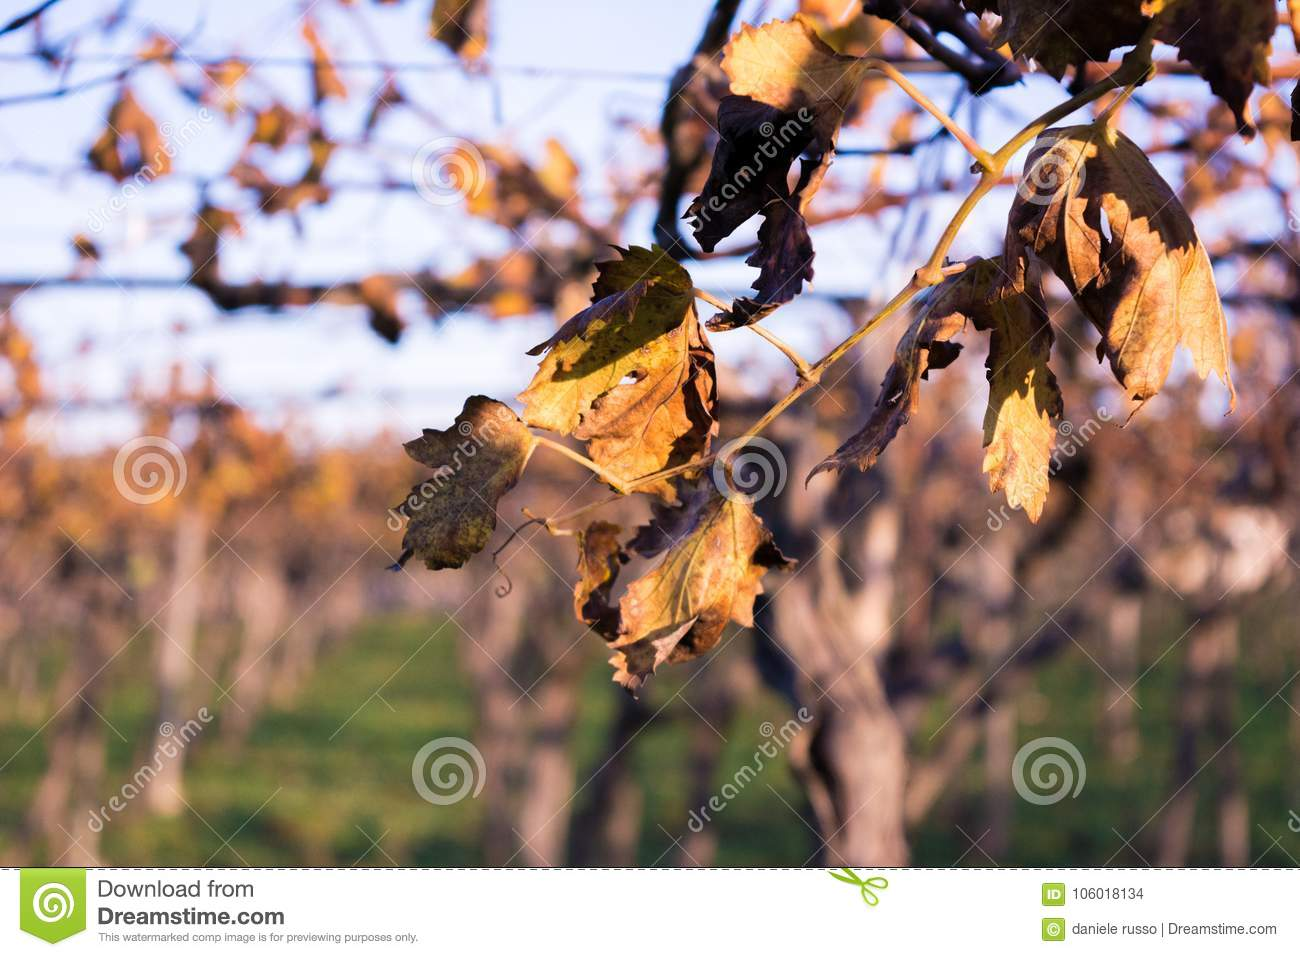 Close Up Of Dry Wine Leaves On Blur Background In An Autumn Day